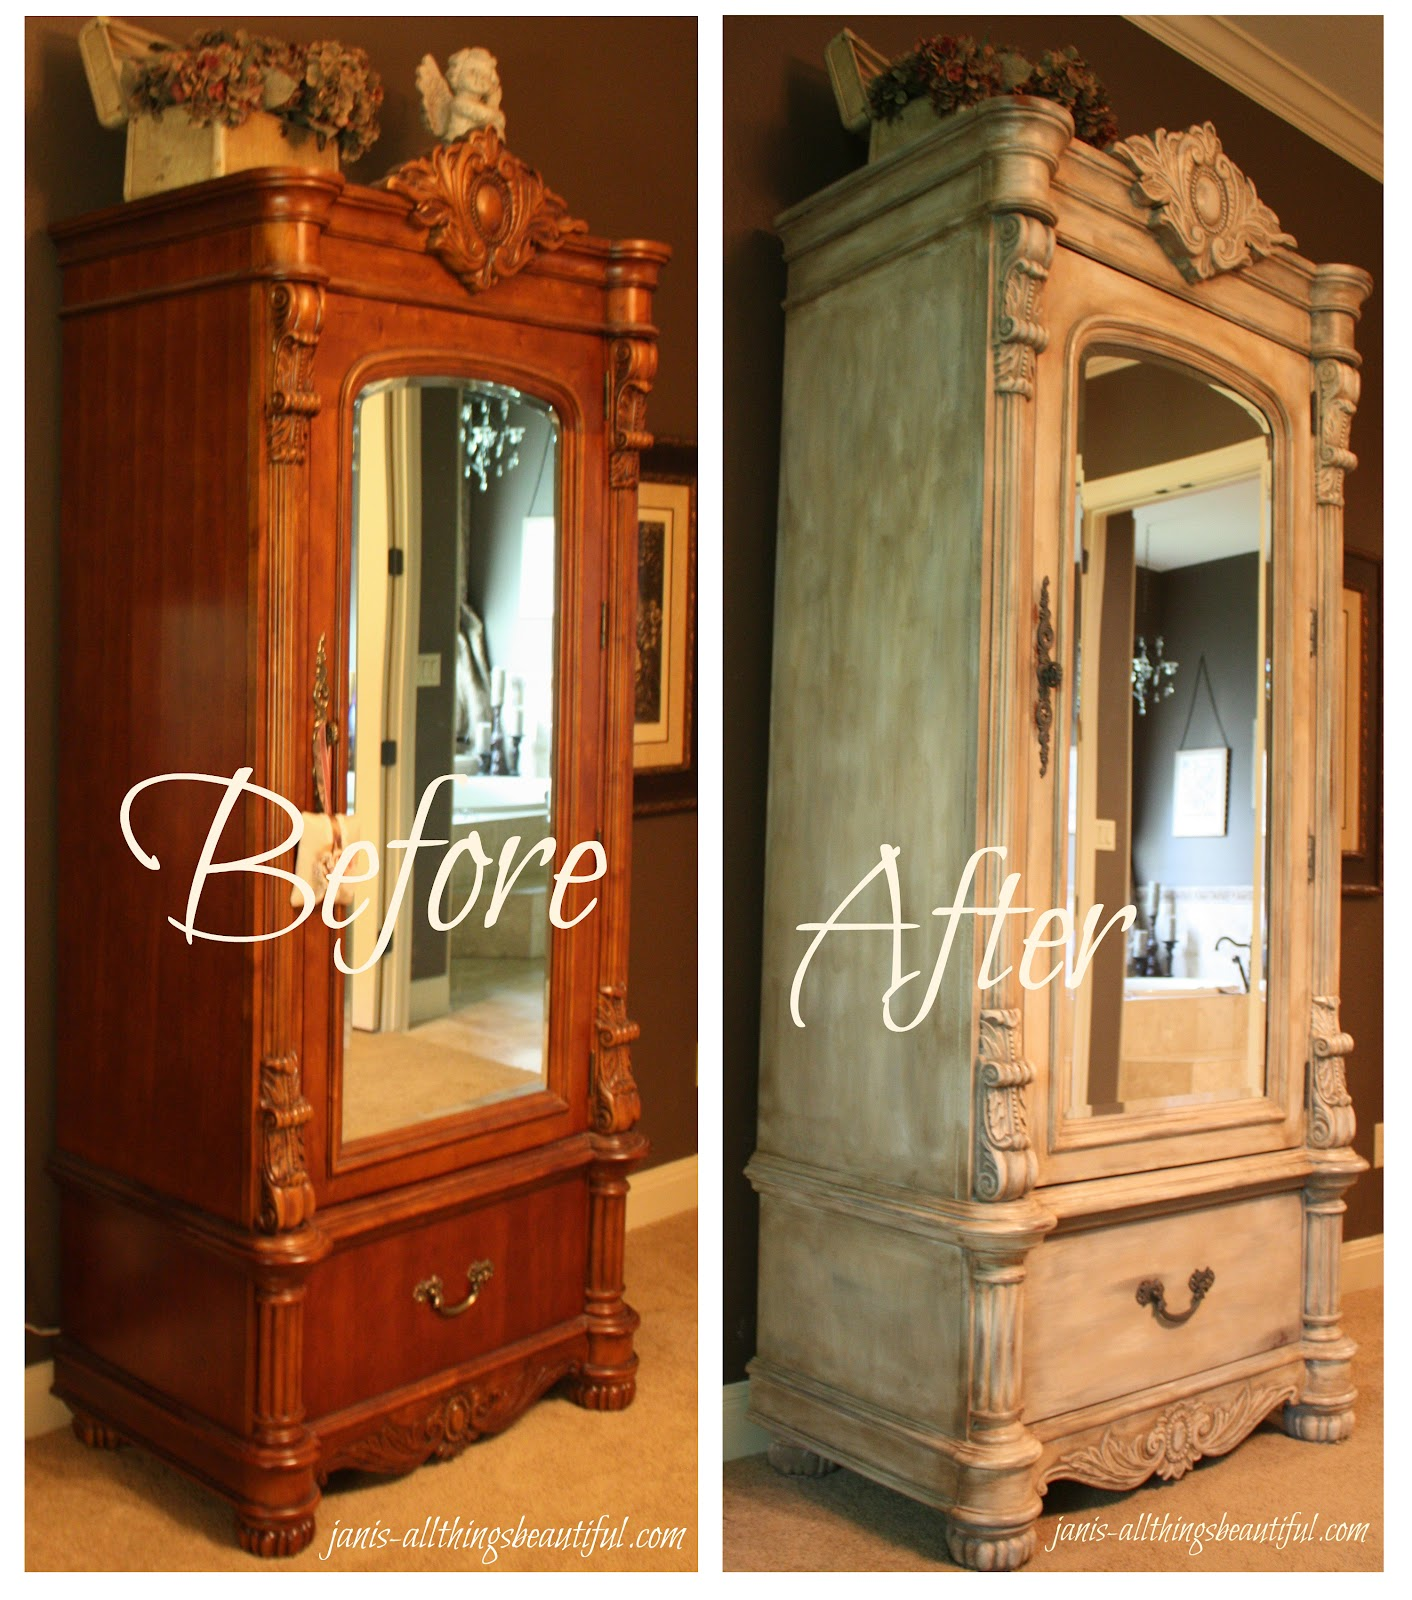 All Things Beautiful Armoire Painted Furniture Makeover : armoire collageedited 1 from www.janis-allthingsbeautiful.com size 1412 x 1600 jpeg 334kB